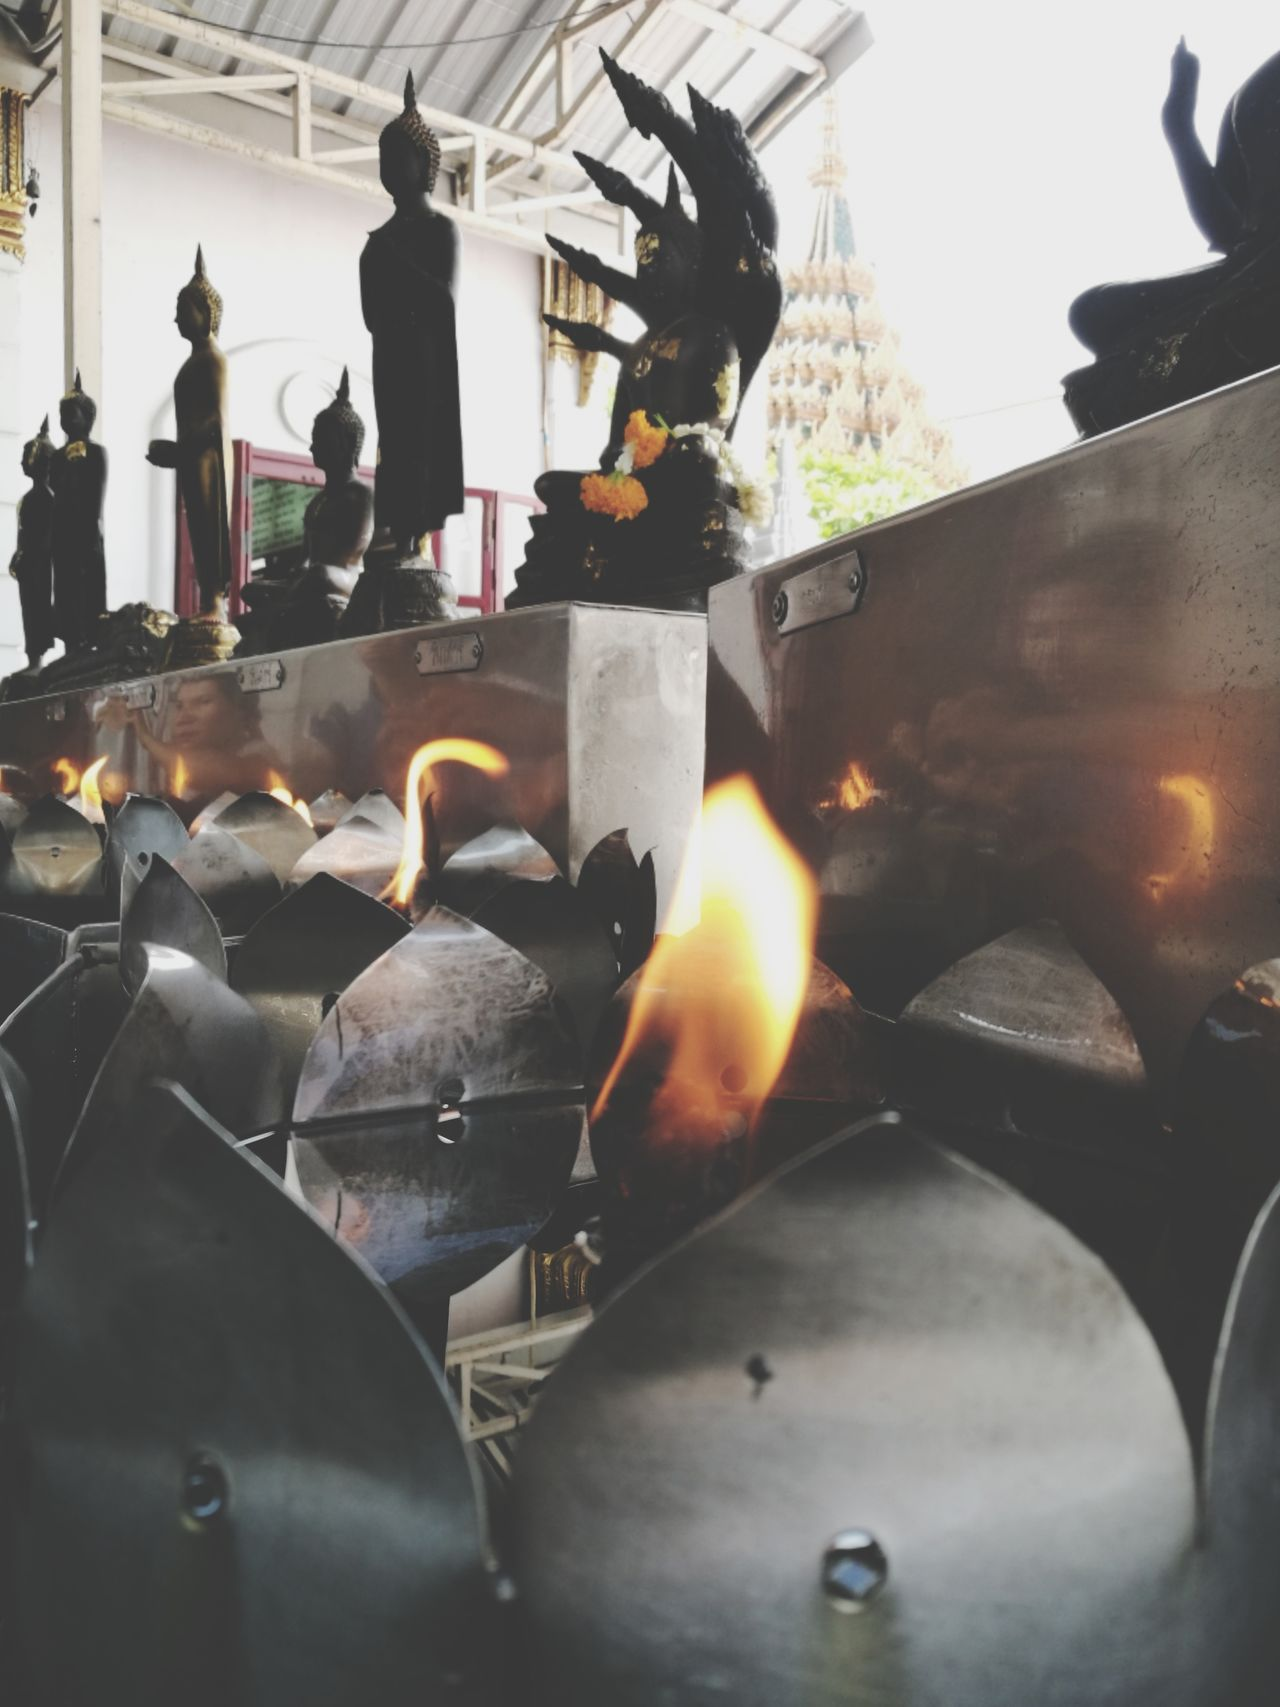 Heat - Temperature Buddhareligion Indoors  No People Foundry Factory Metal Industry Manufacturing Equipment Day Close-up Freshness